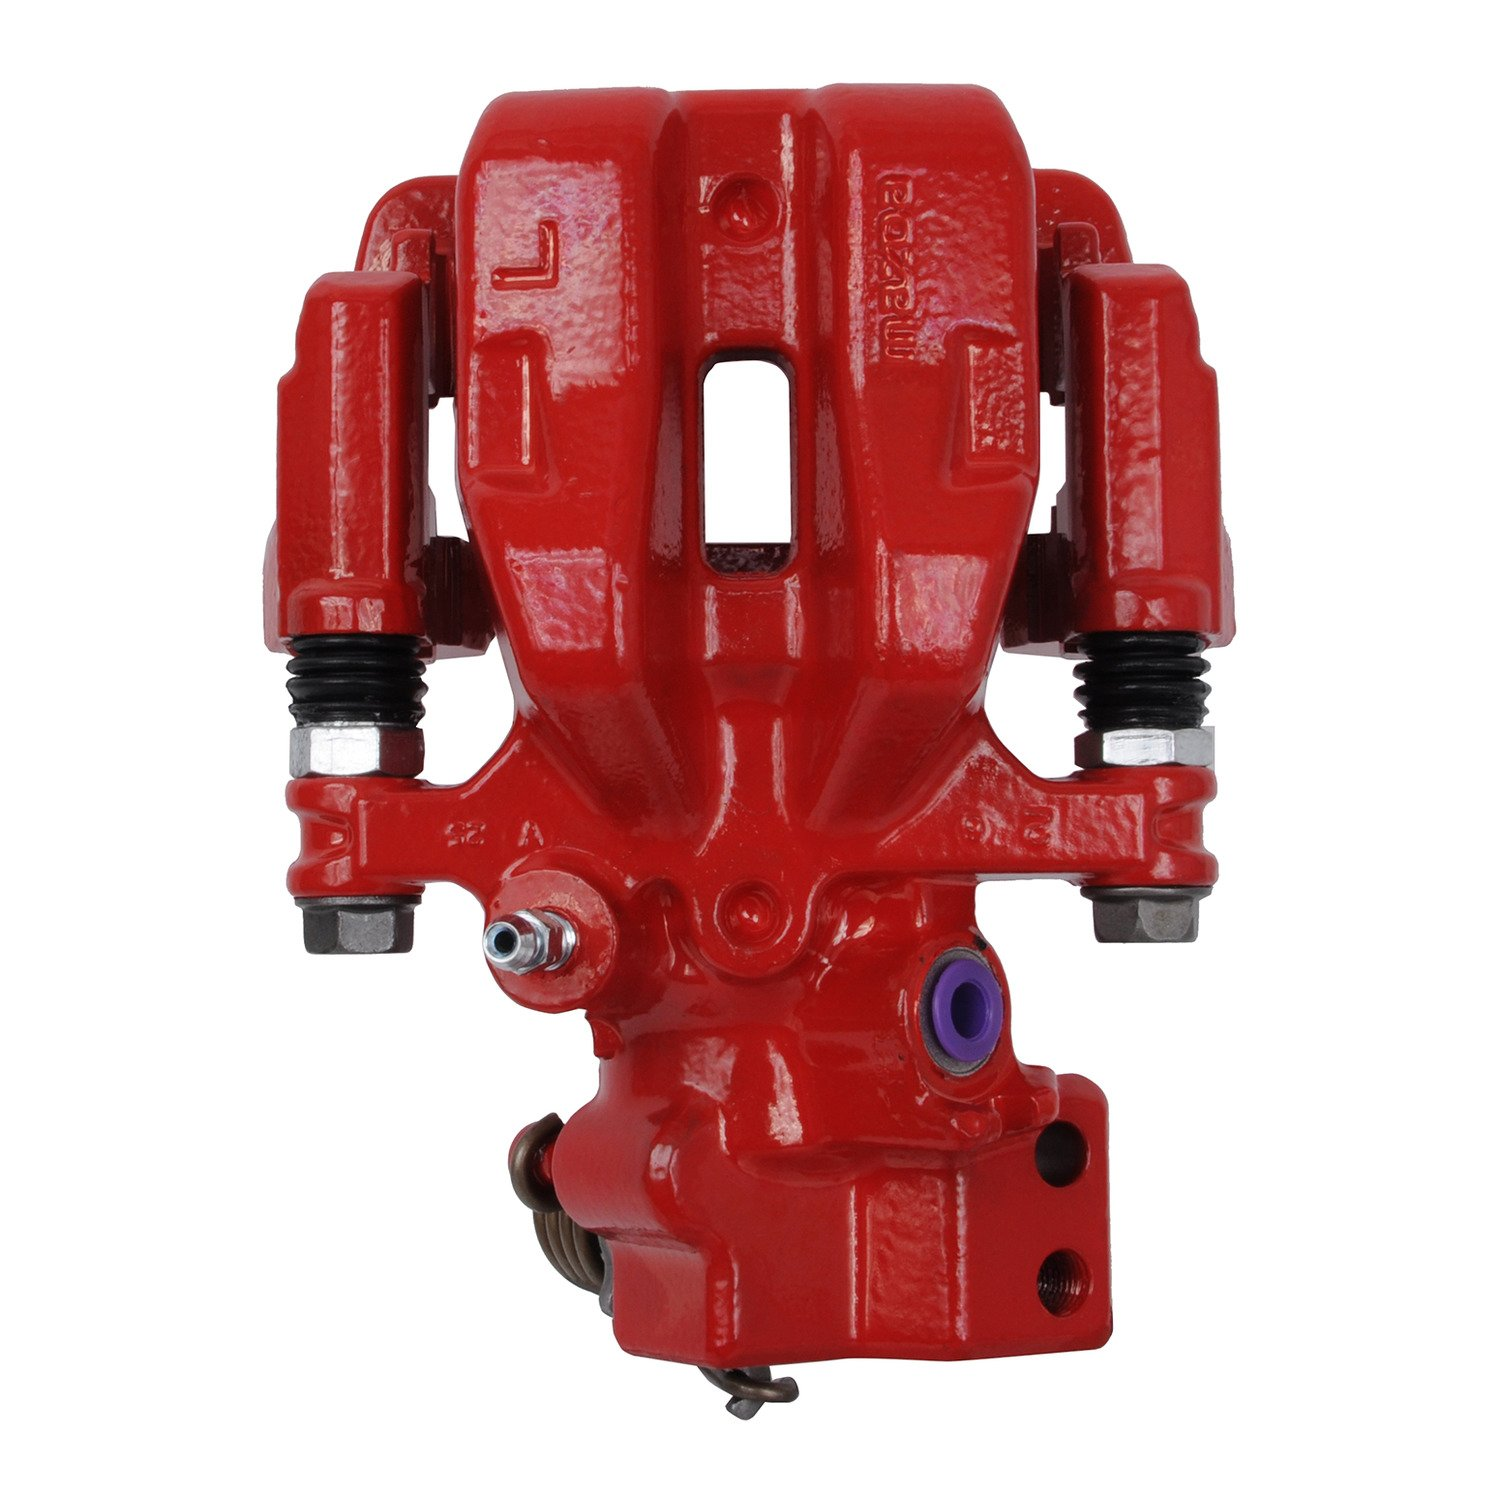 A1 Cardone 19-3322XR Remanufactured Unloaded Caliper with Color Coating